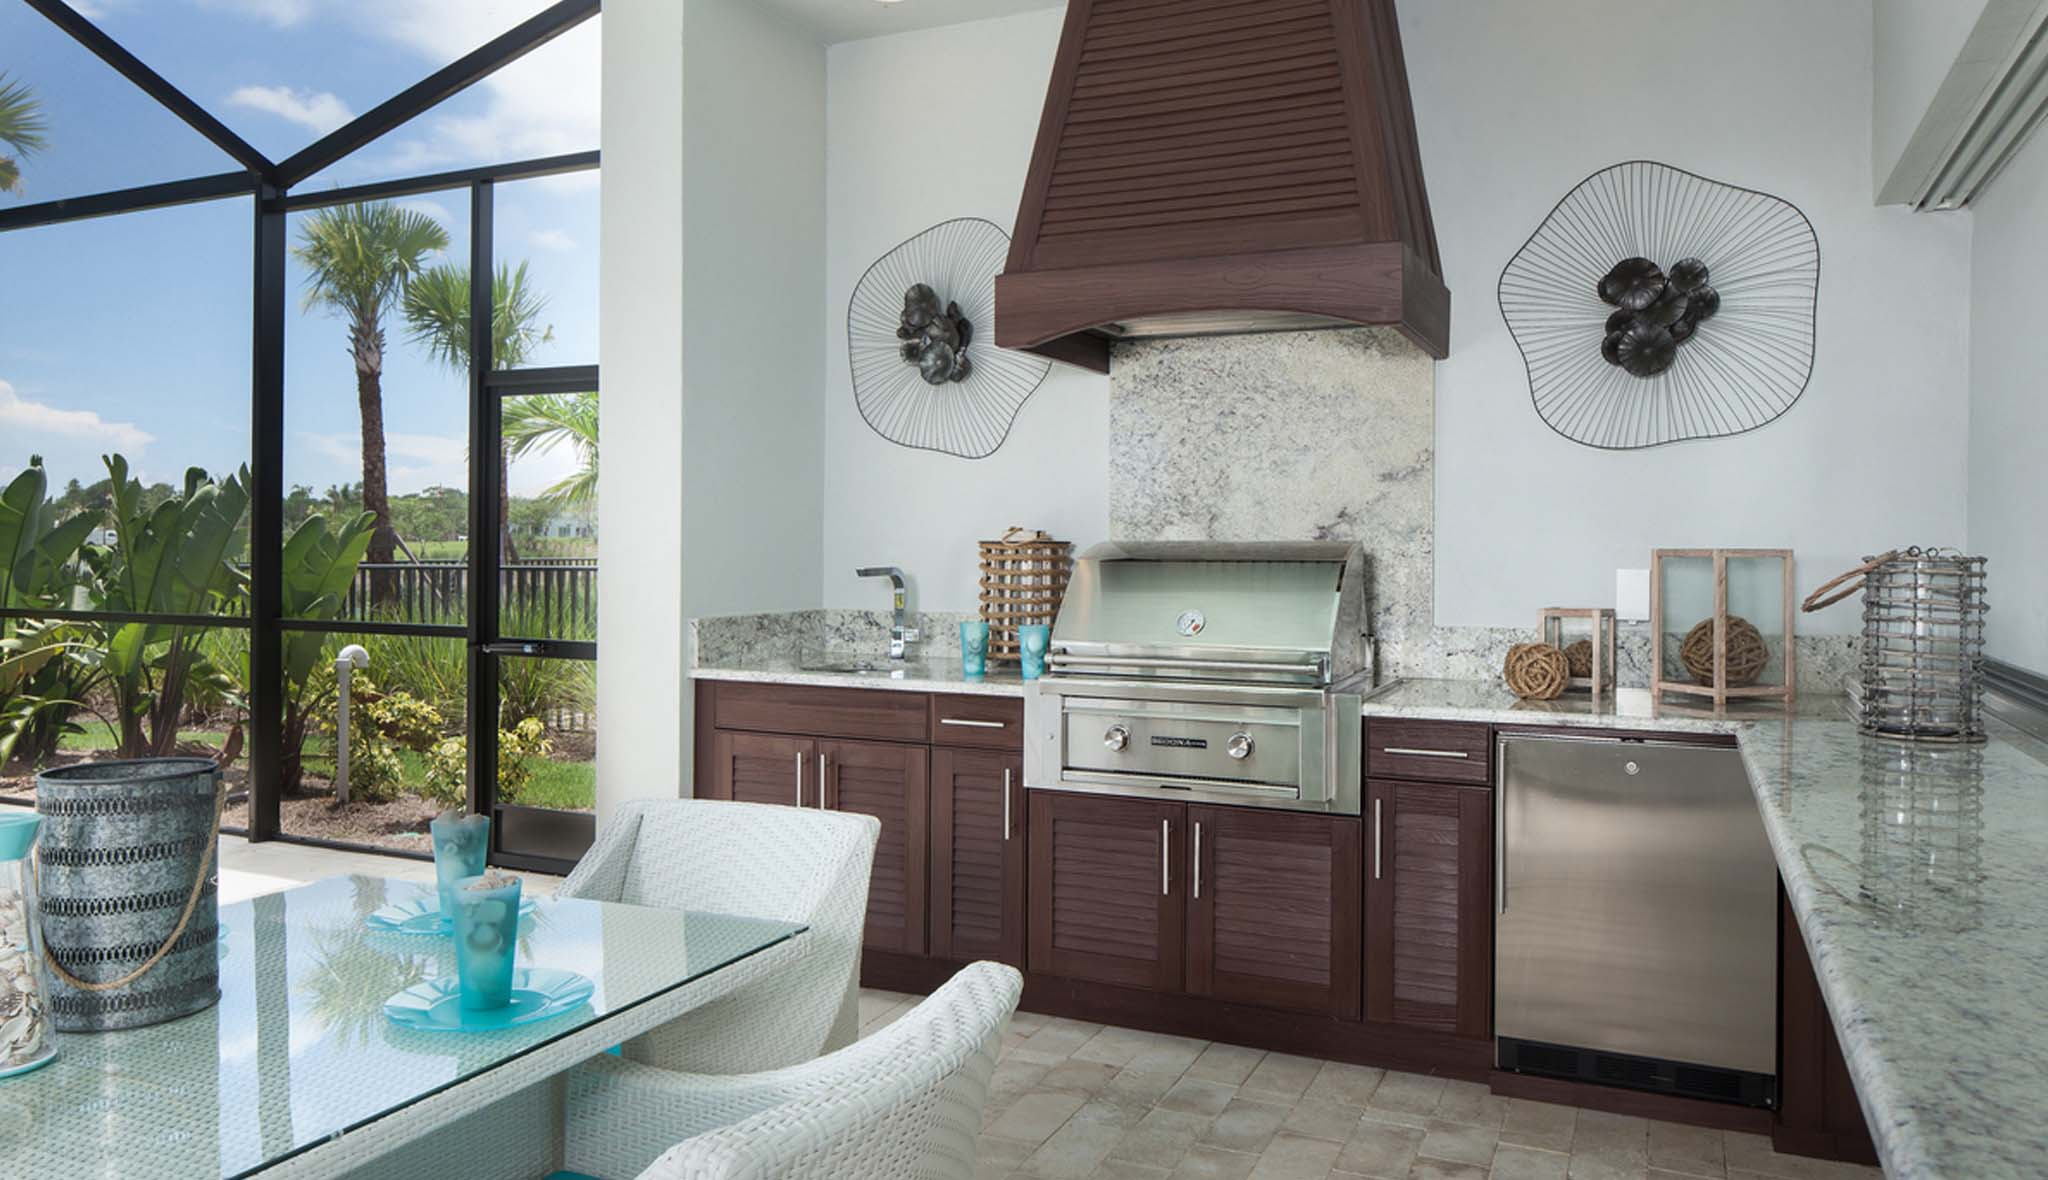 beautiful outdoor kitchen sunroom design brown cabinets stainless grill